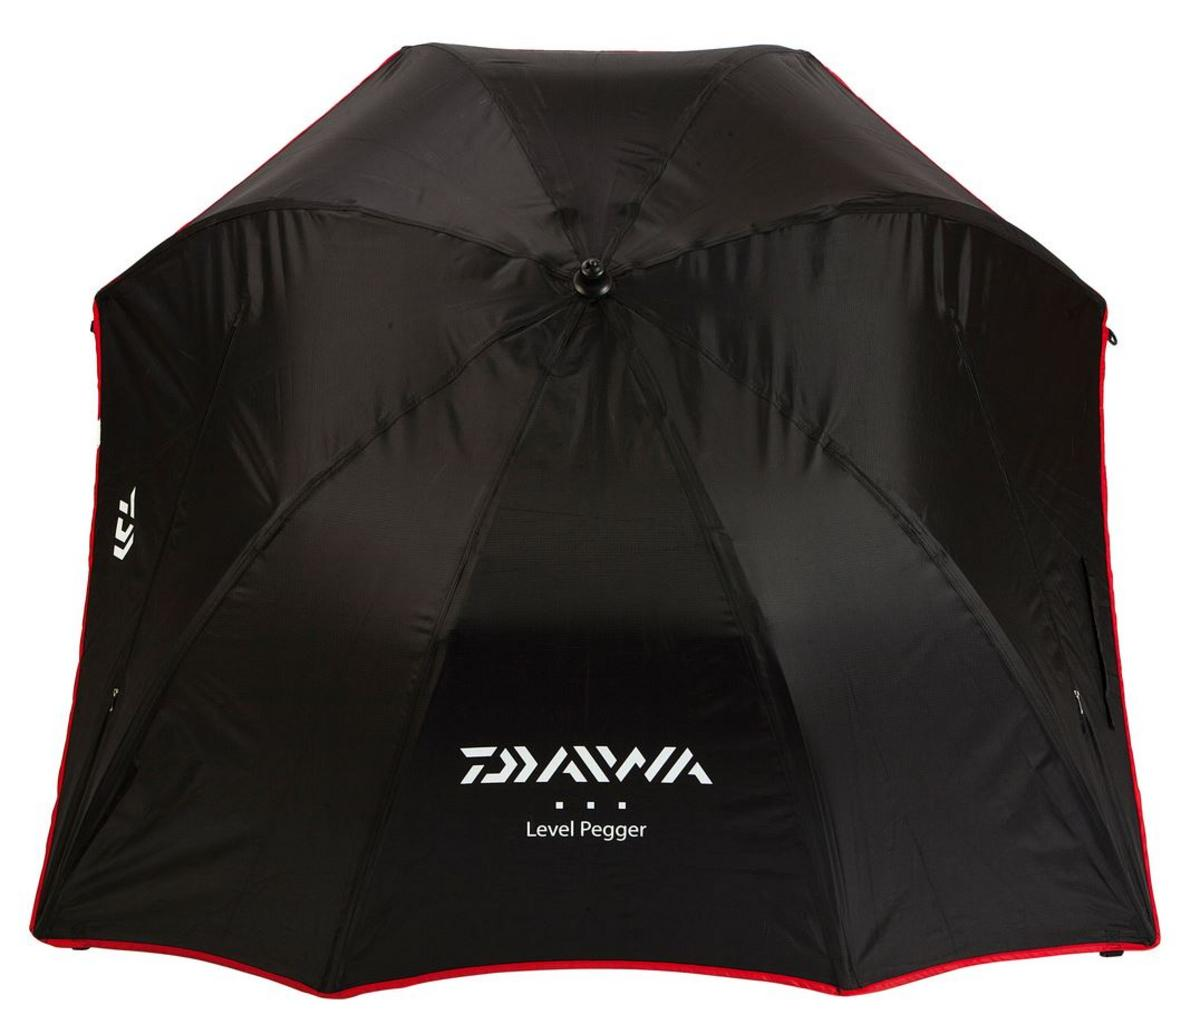 "New Team Daiwa Level Pegger M3 125cm/50"" Fishing Brolly / Umbrella -TDL3"